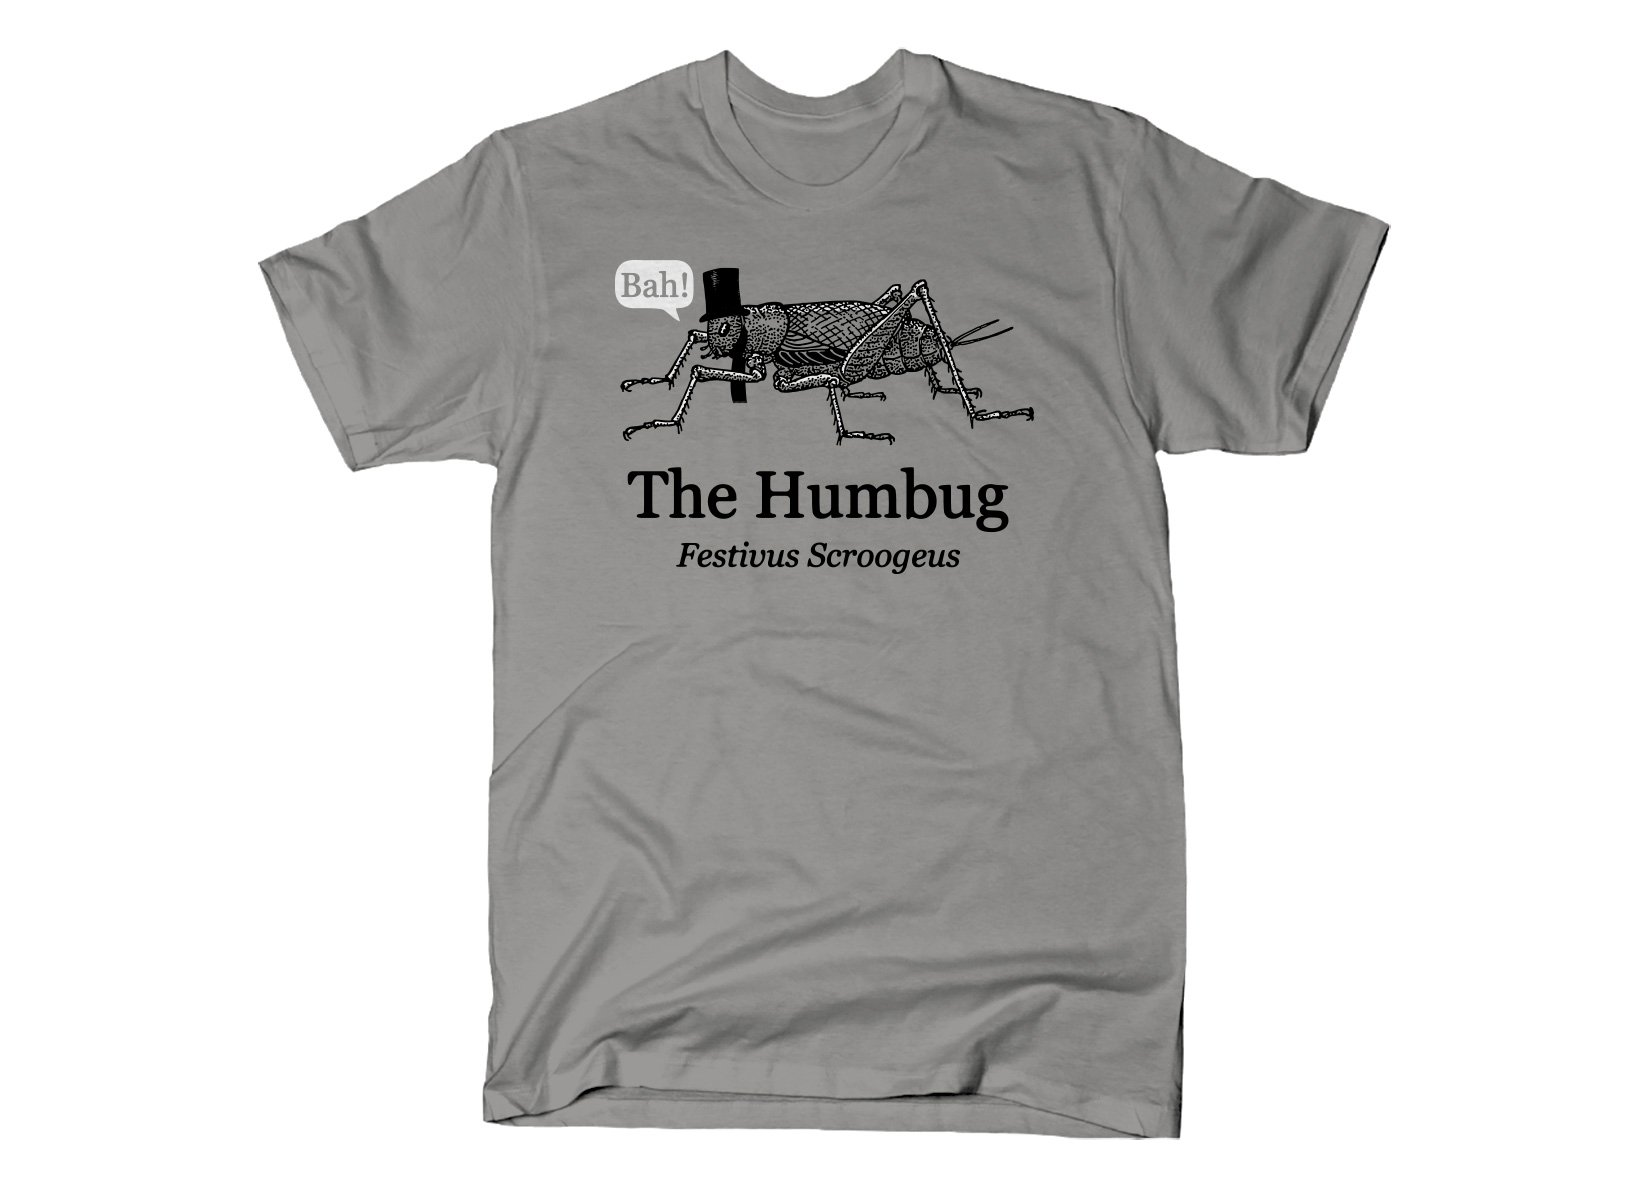 The Humbug on Mens T-Shirt